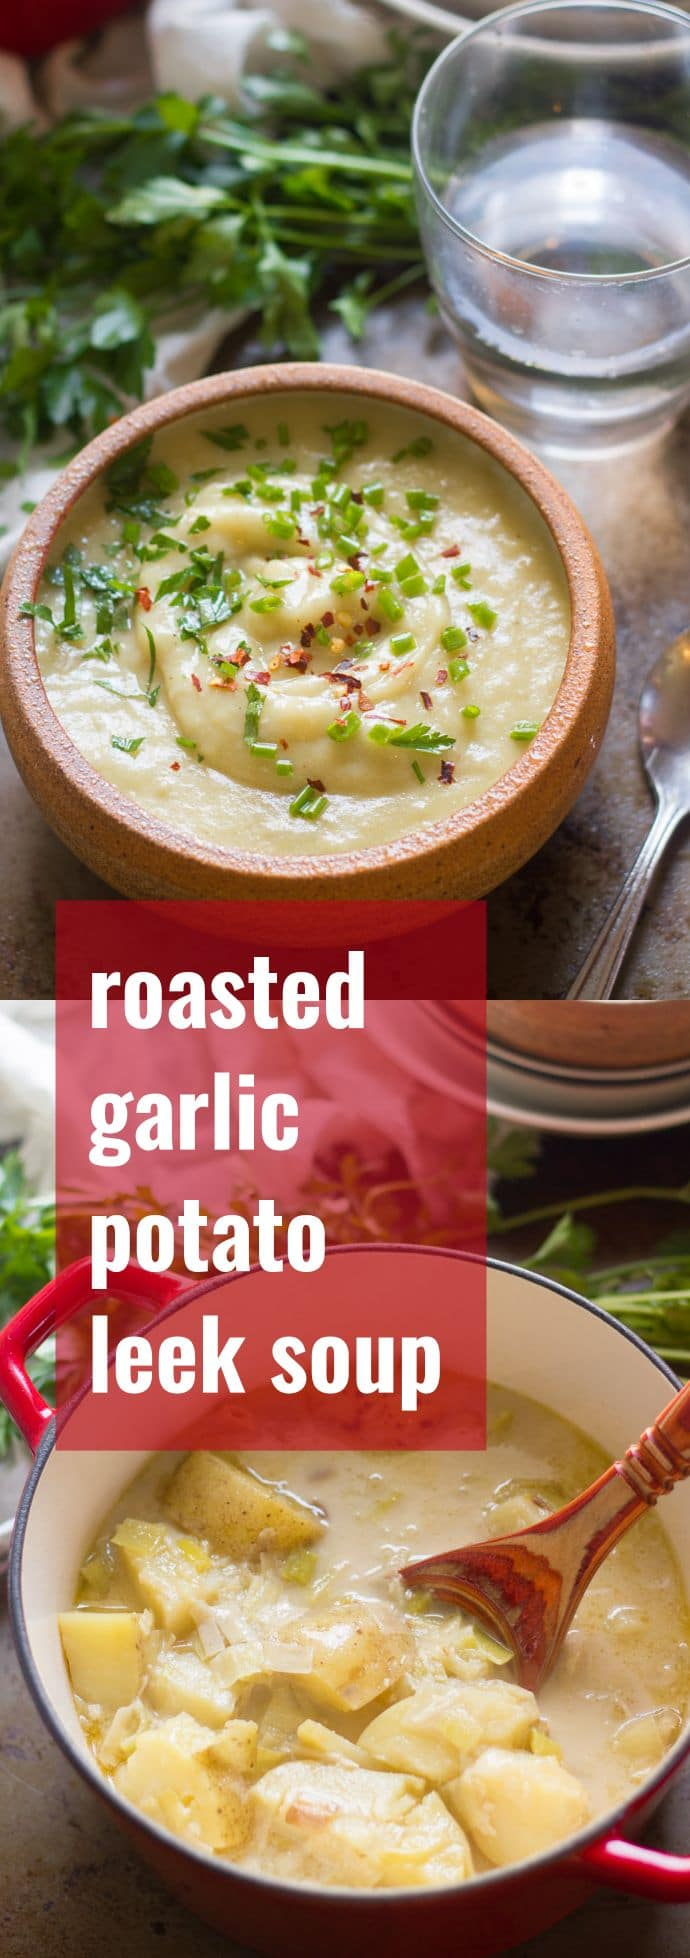 Roasted Garlic Potato Leek Soup Pinterest graphic